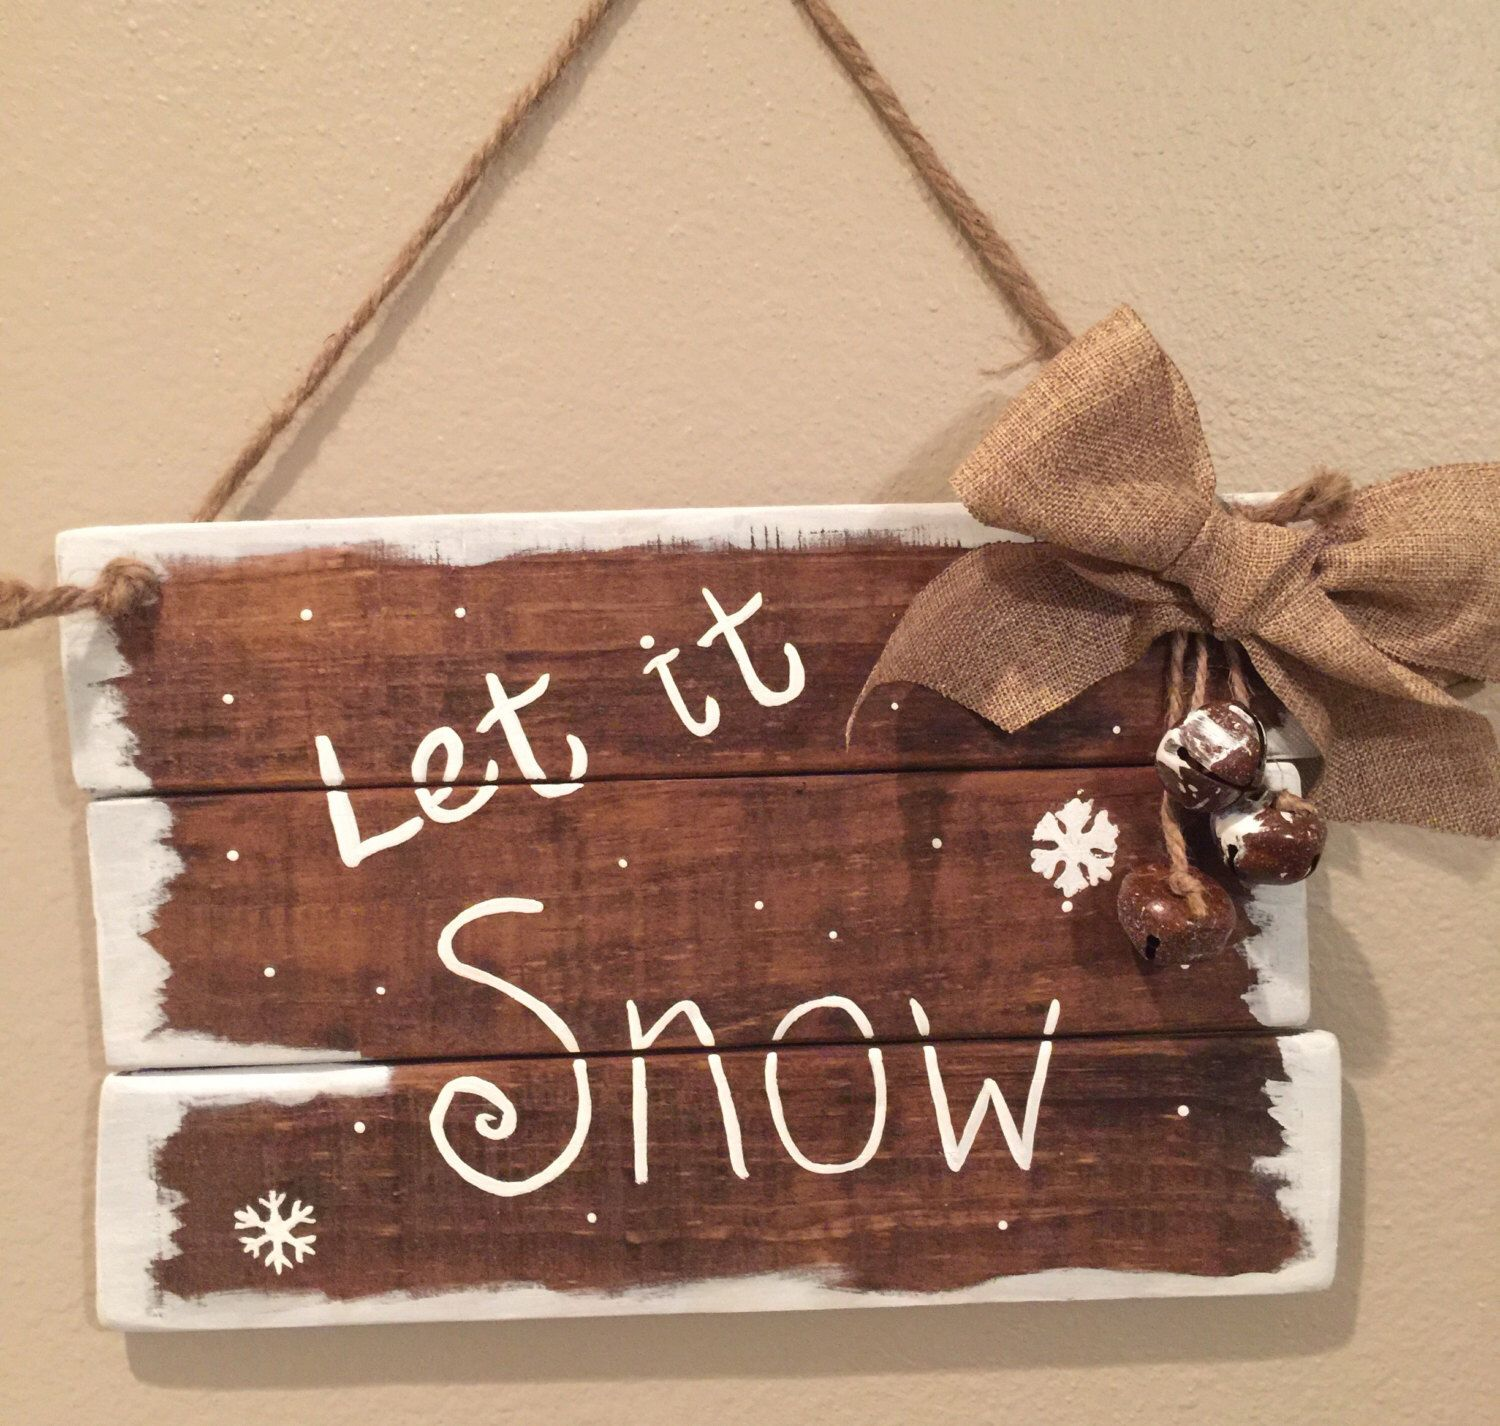 rustic christmas pallet signs let it snow christmas signs rustic christmas decorations winter decor https - Christmas Pallet Signs